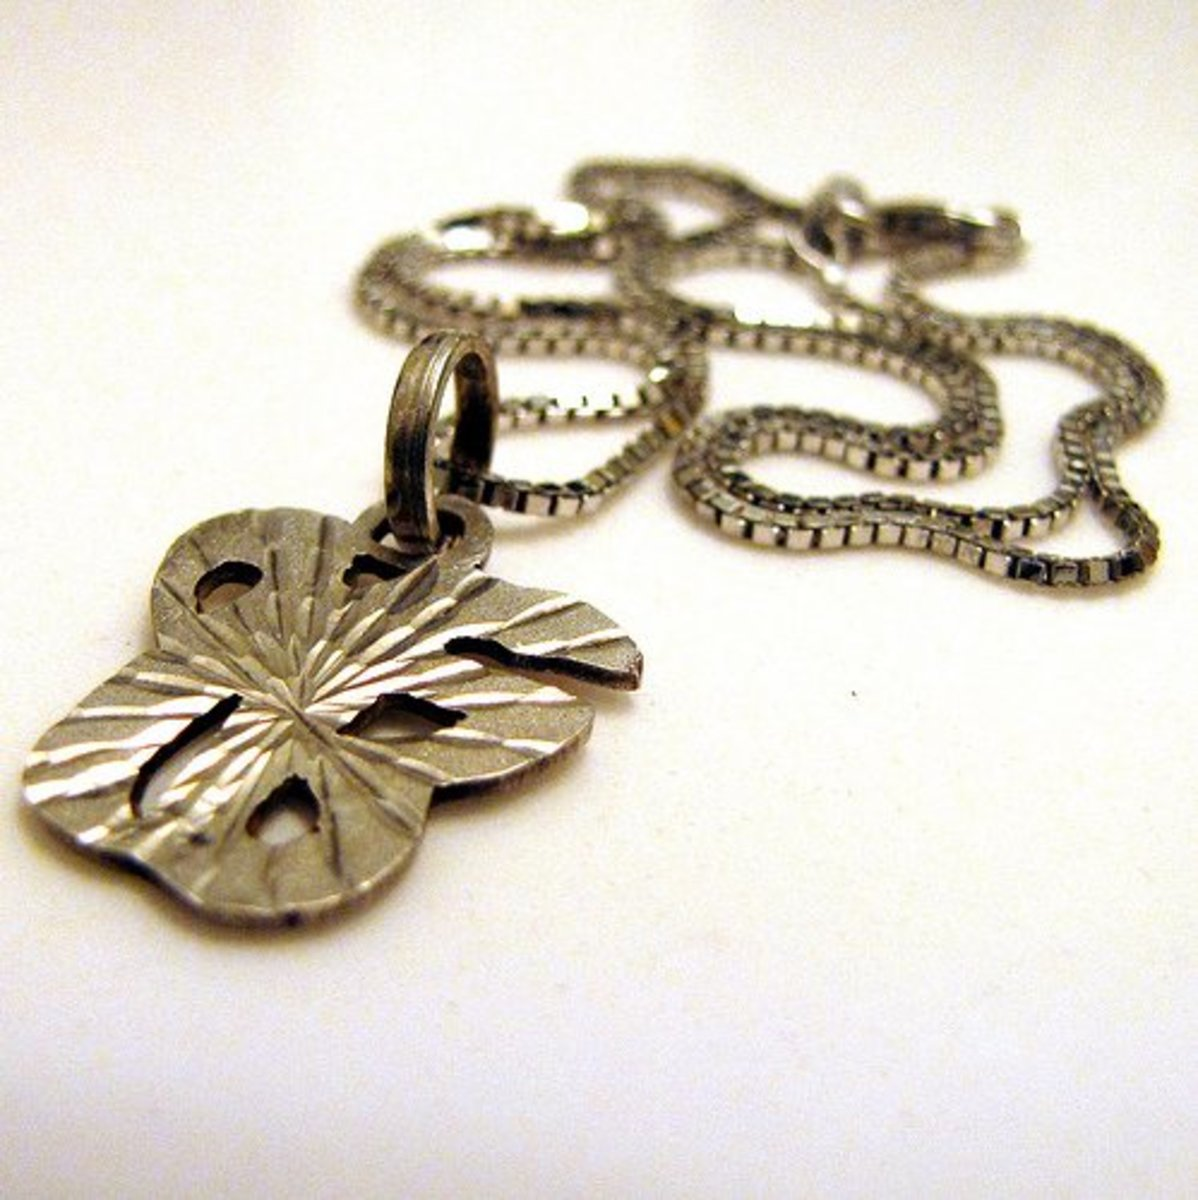 Box chain necklace with pendant.